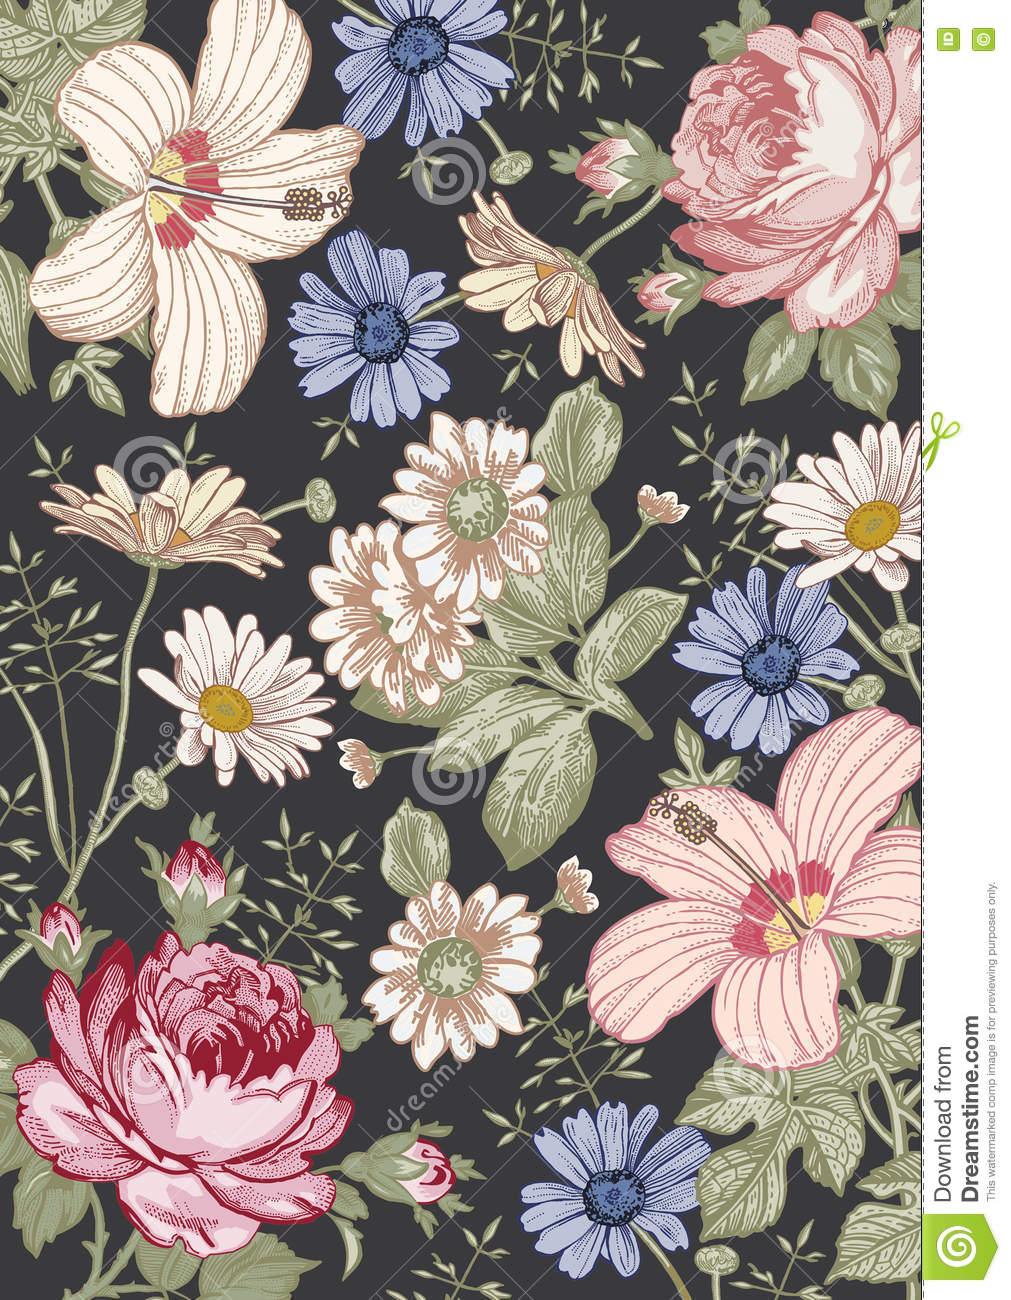 Royalty Free Vector Download Realistic Victorian Flowers Pattern Vintage Background